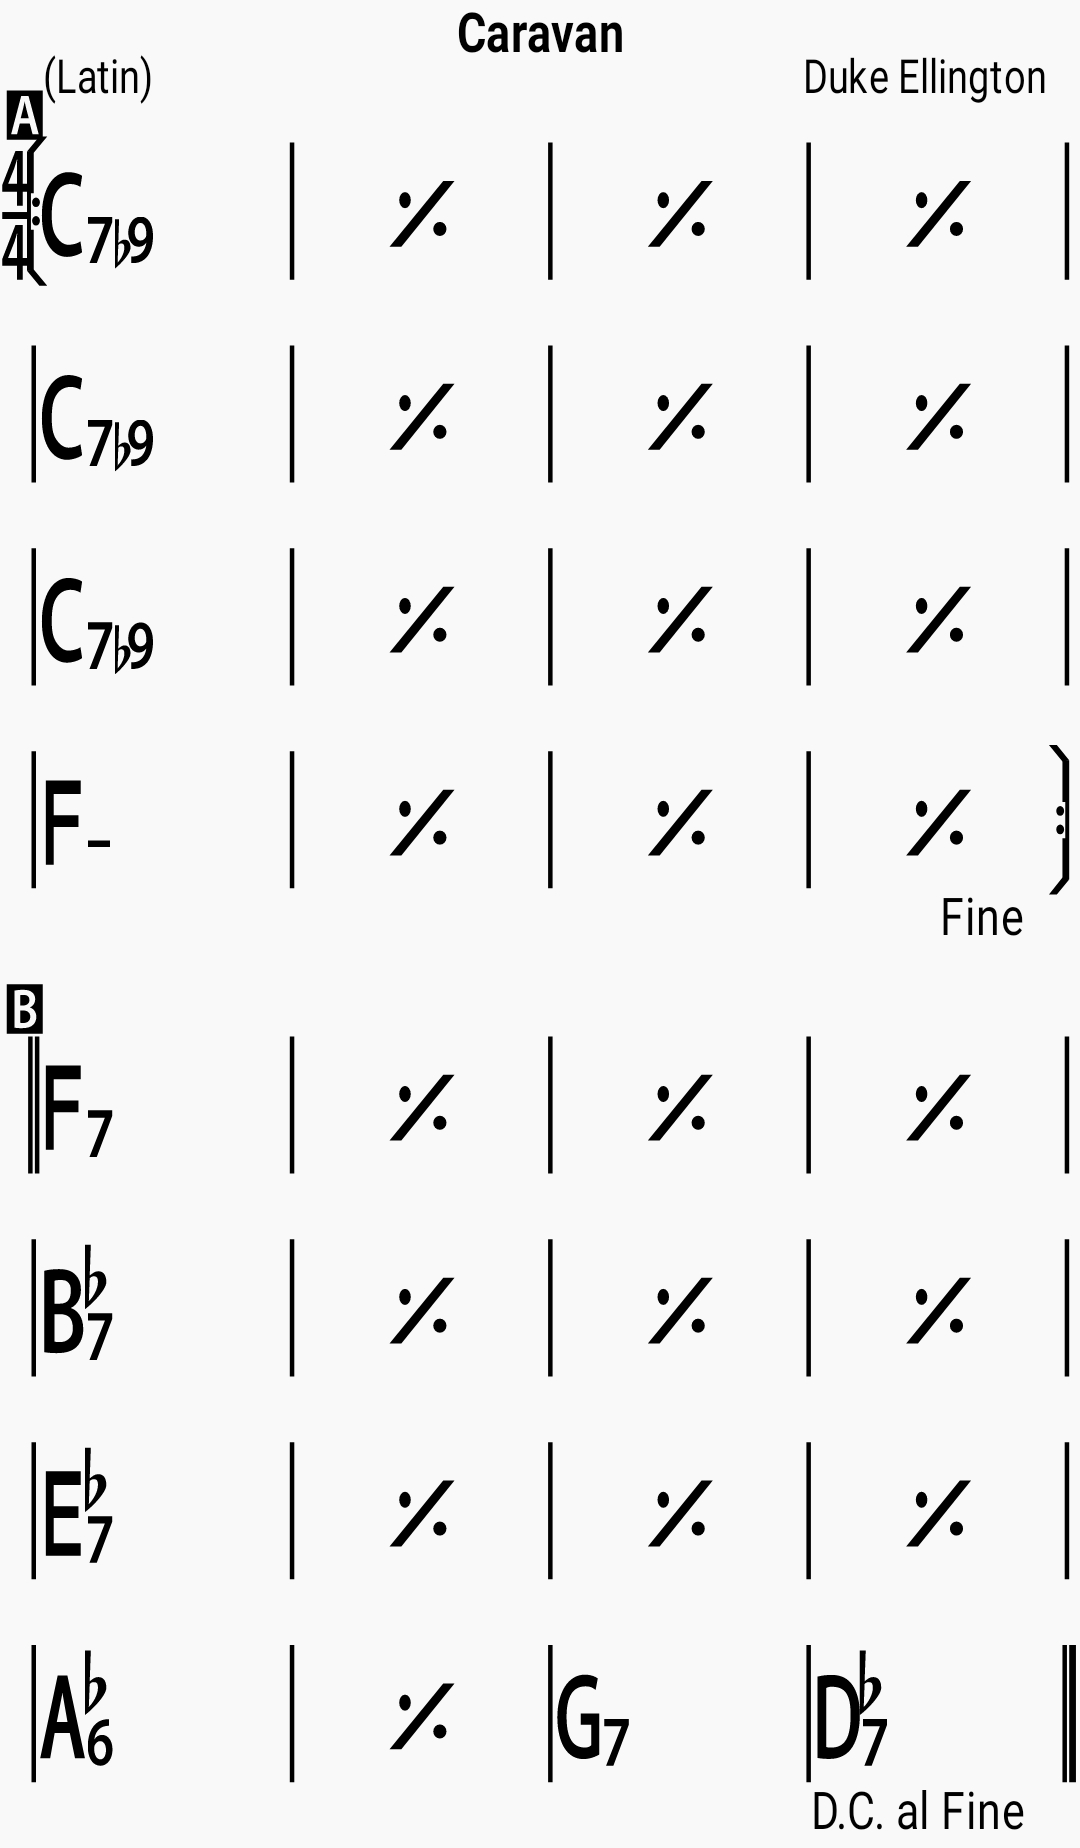 Chord chart for the jazz standard Caravan